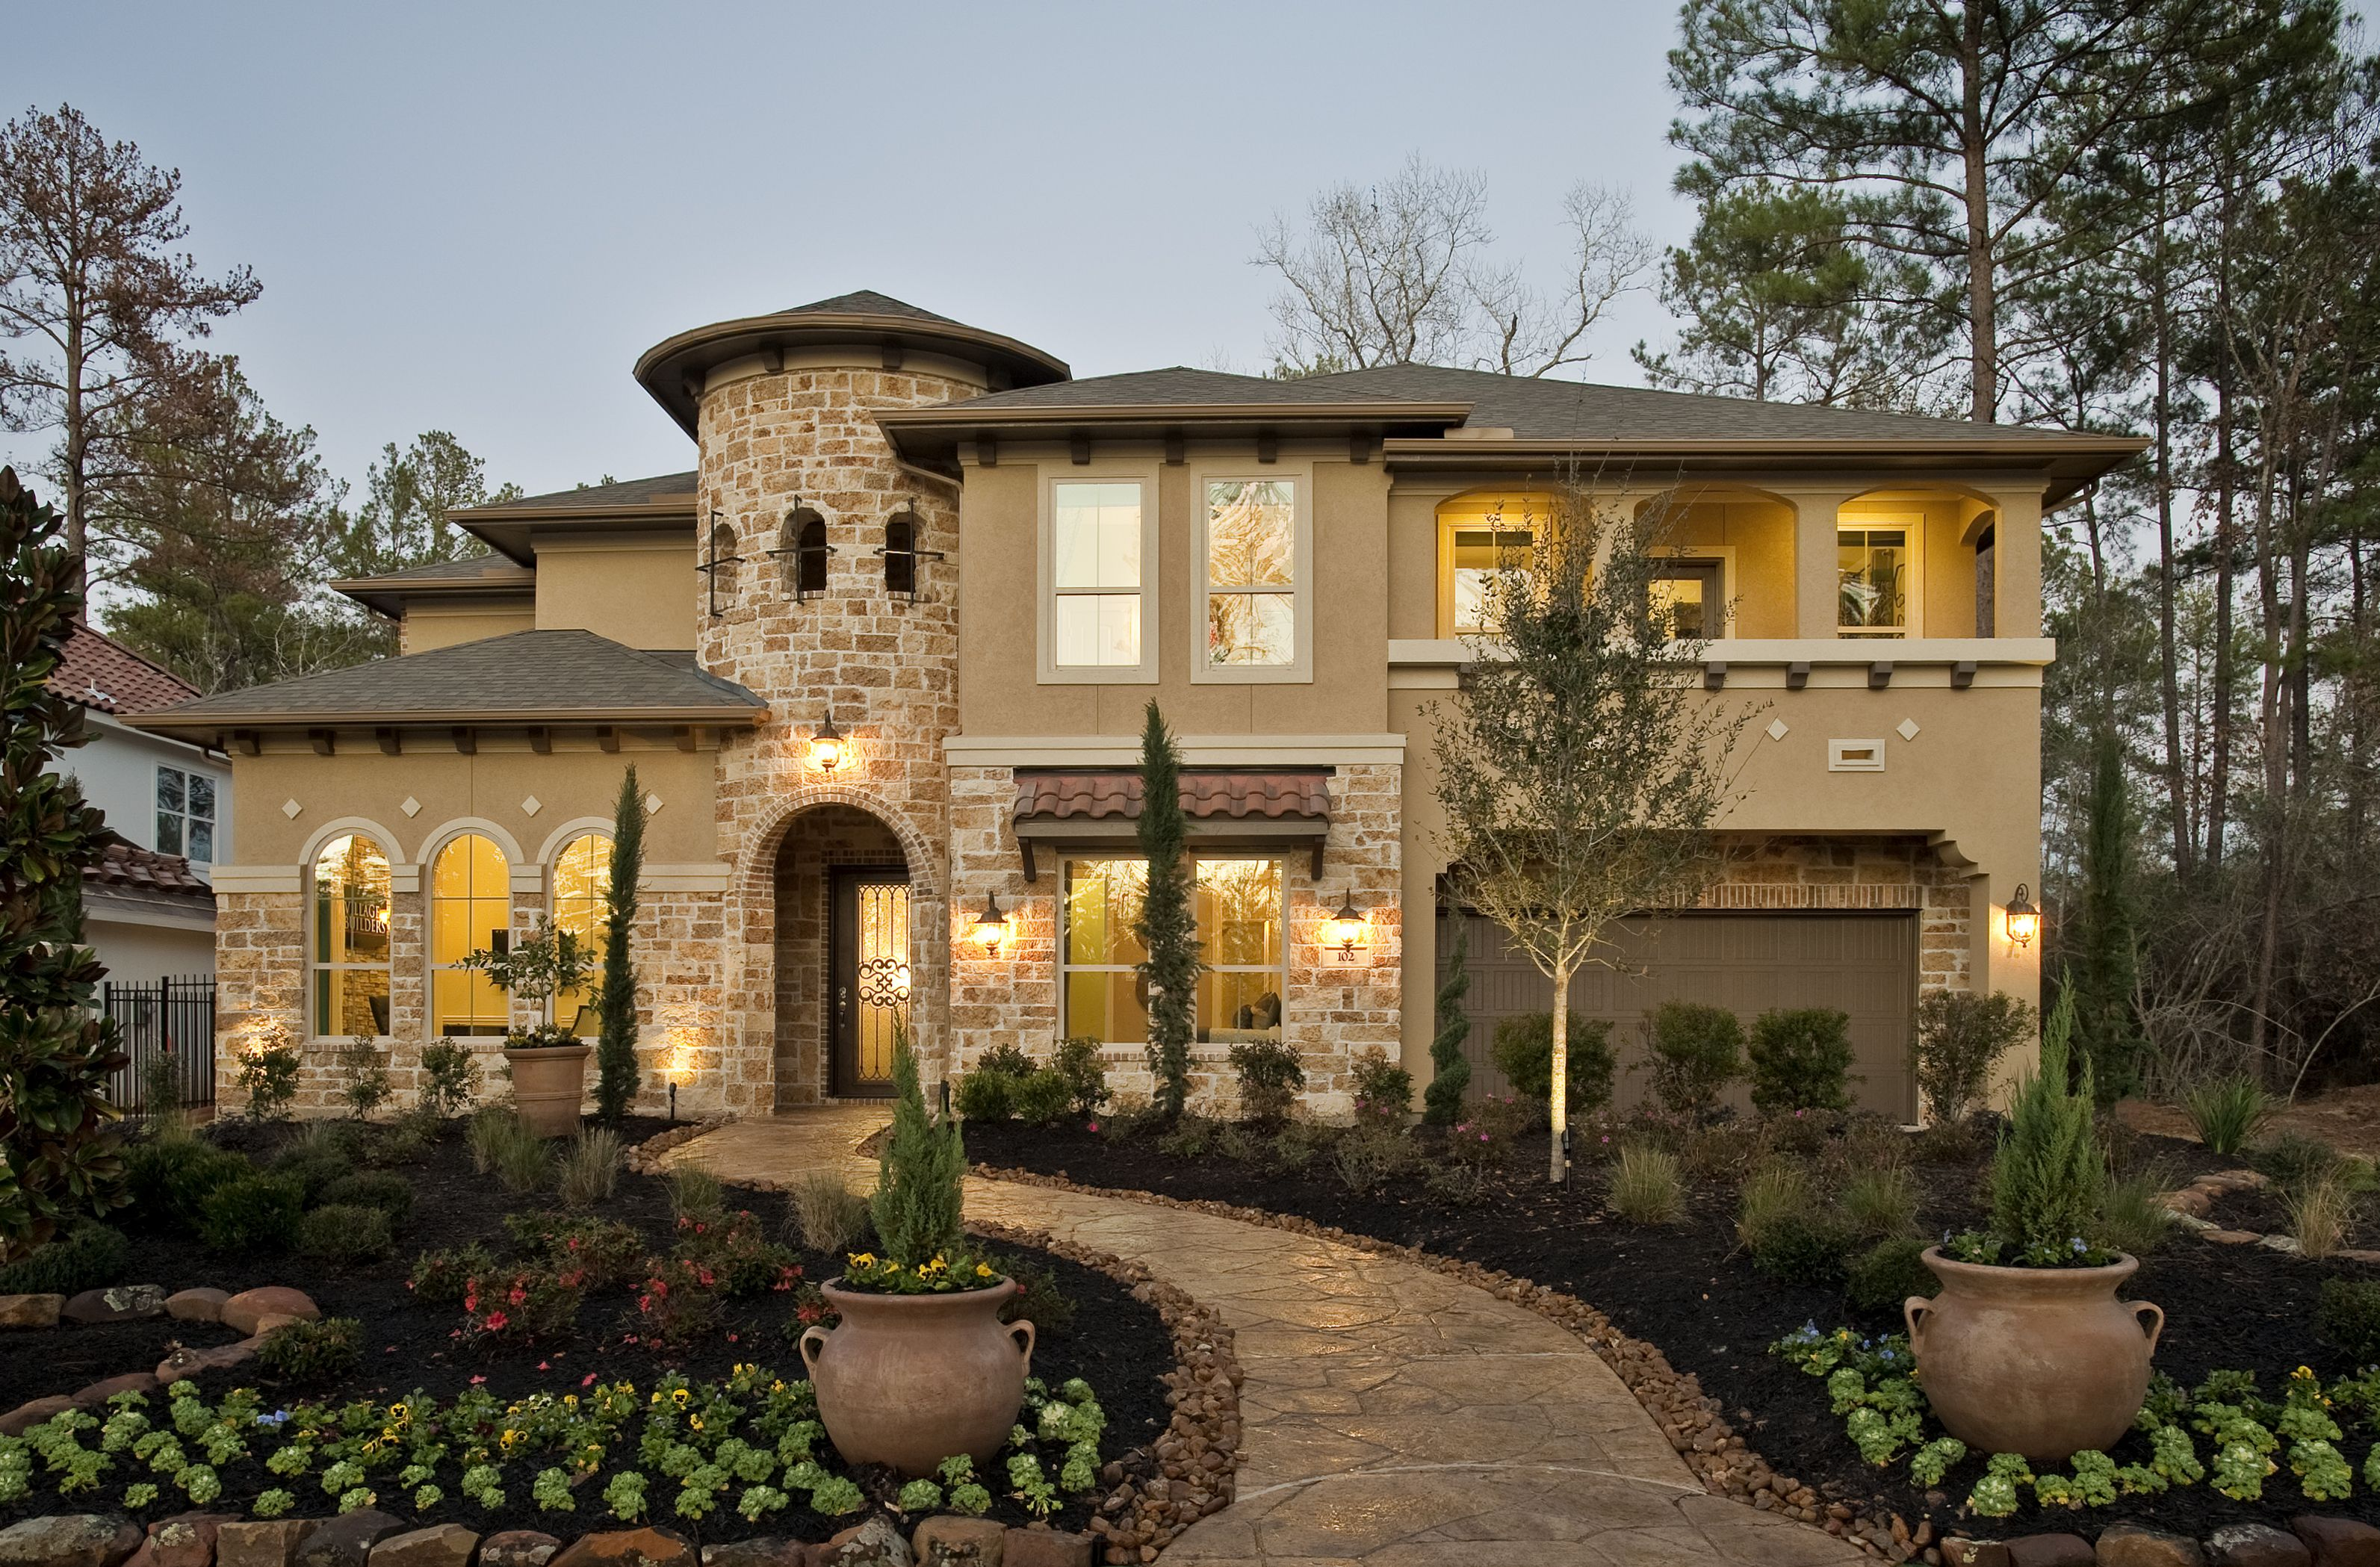 Atlanta Homebuyers Realty Group Earn Cash Back At Closing - Ardmore hall luxury residence built by michael knight